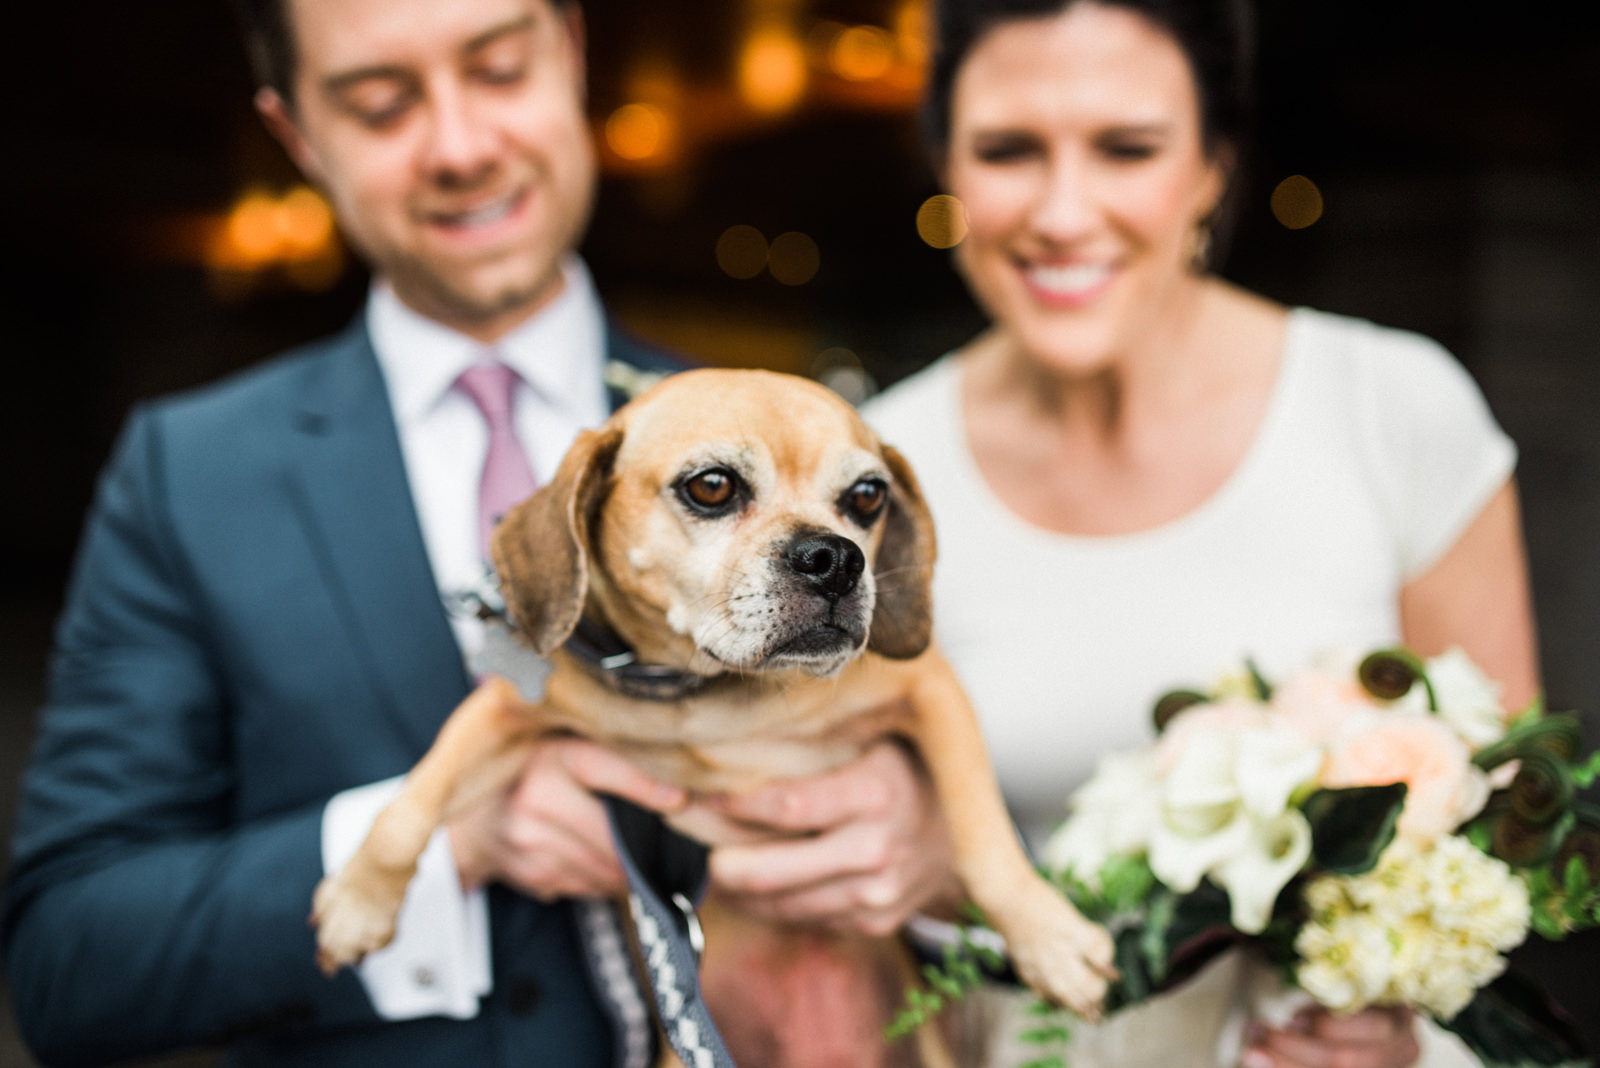 091-the-four-seasons-seattle-wedding-with-dog.jpg